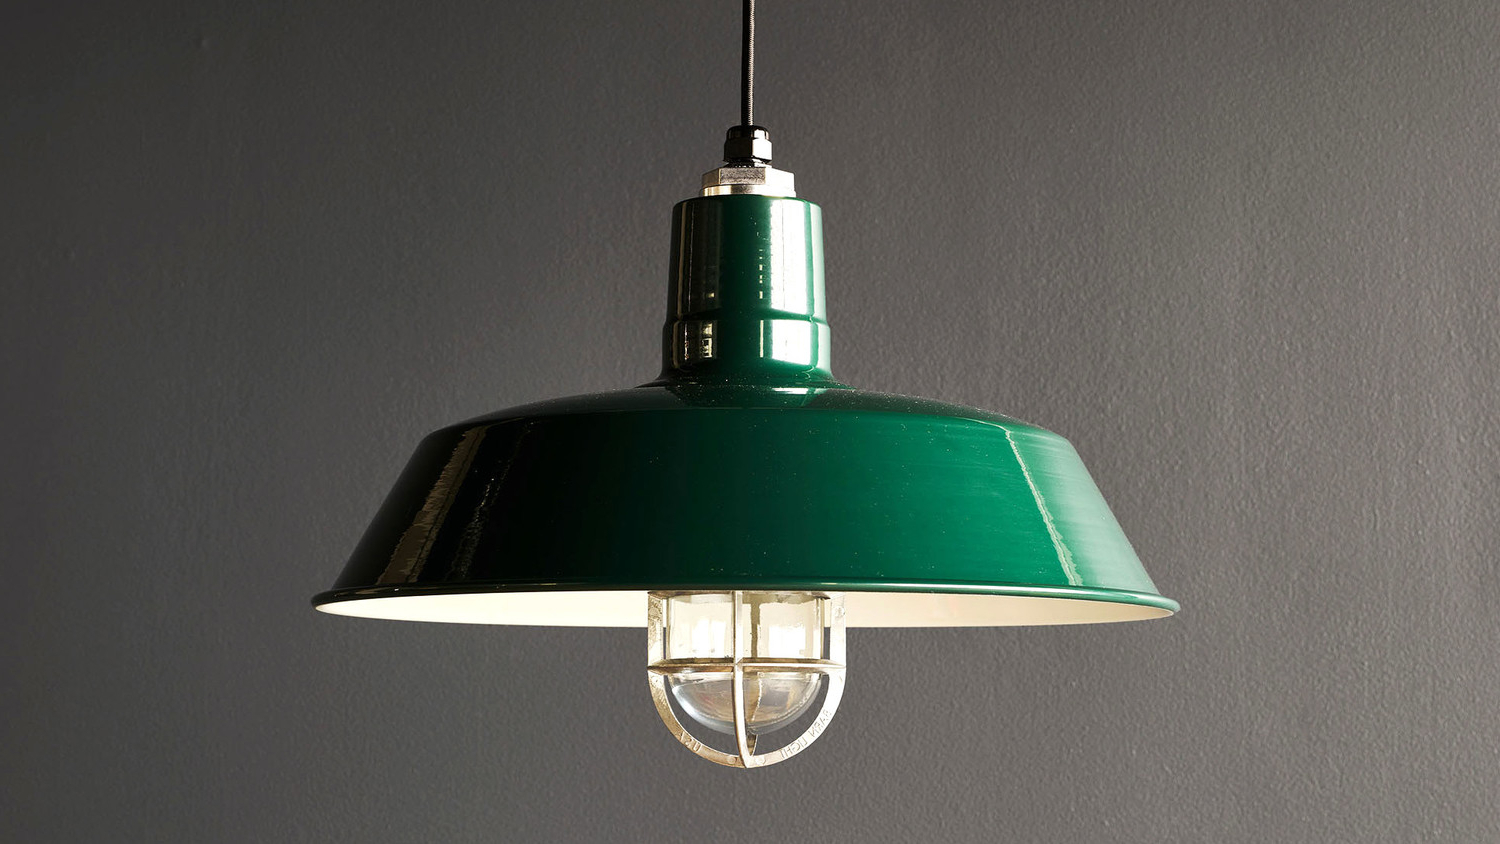 Most Recent Hamilton 1 Light Single Dome Pendants For Special Prices On Hamilton 1 Light Single Dome Pendant (Gallery 6 of 20)